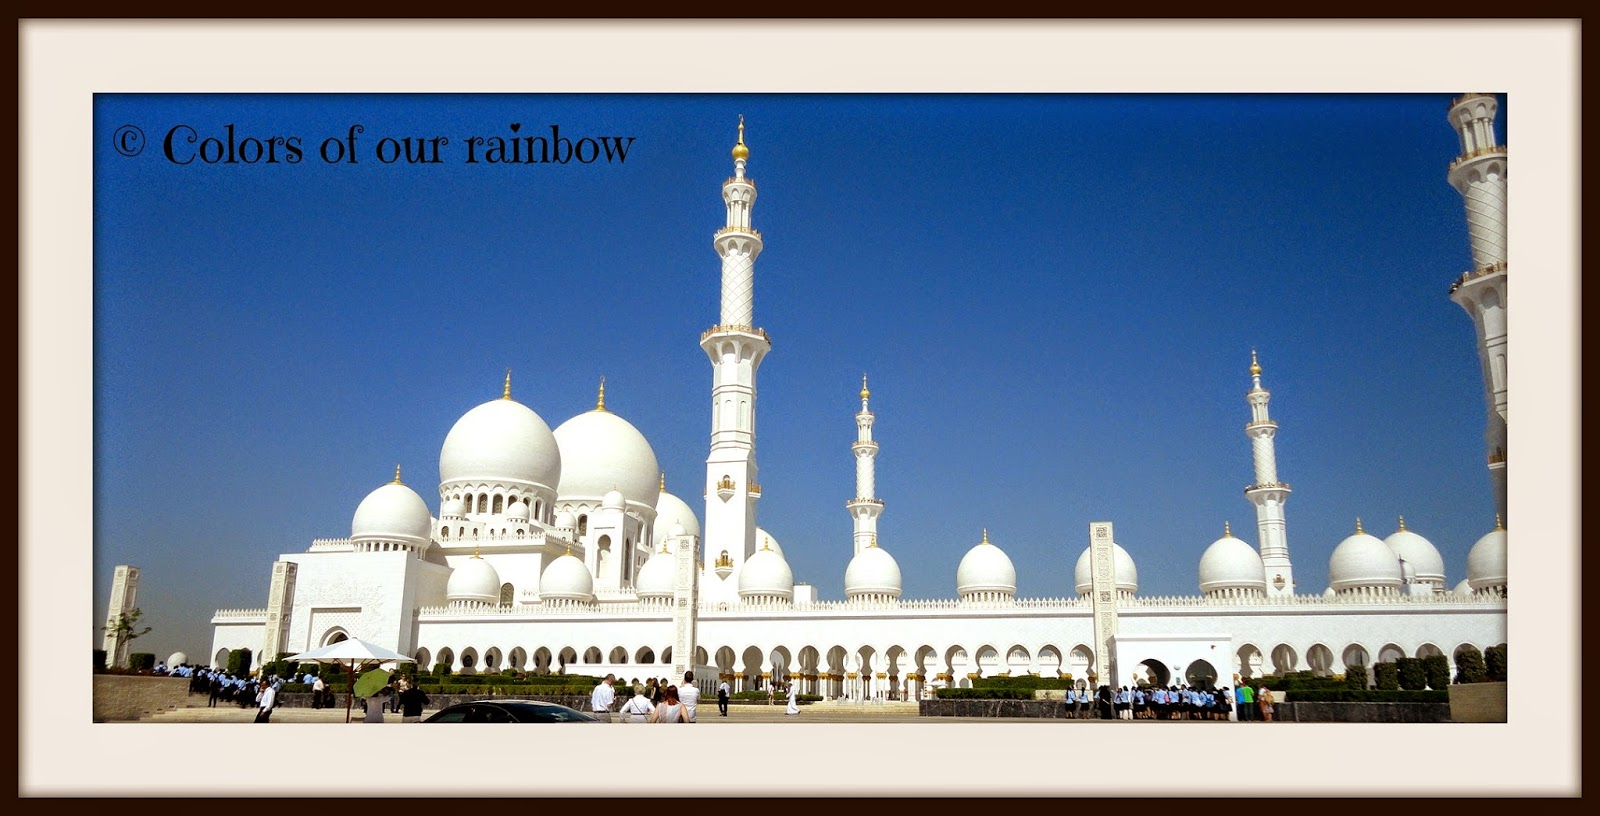 The grand mosque abudhabi @colorsofourrainbow.blogspot.ae